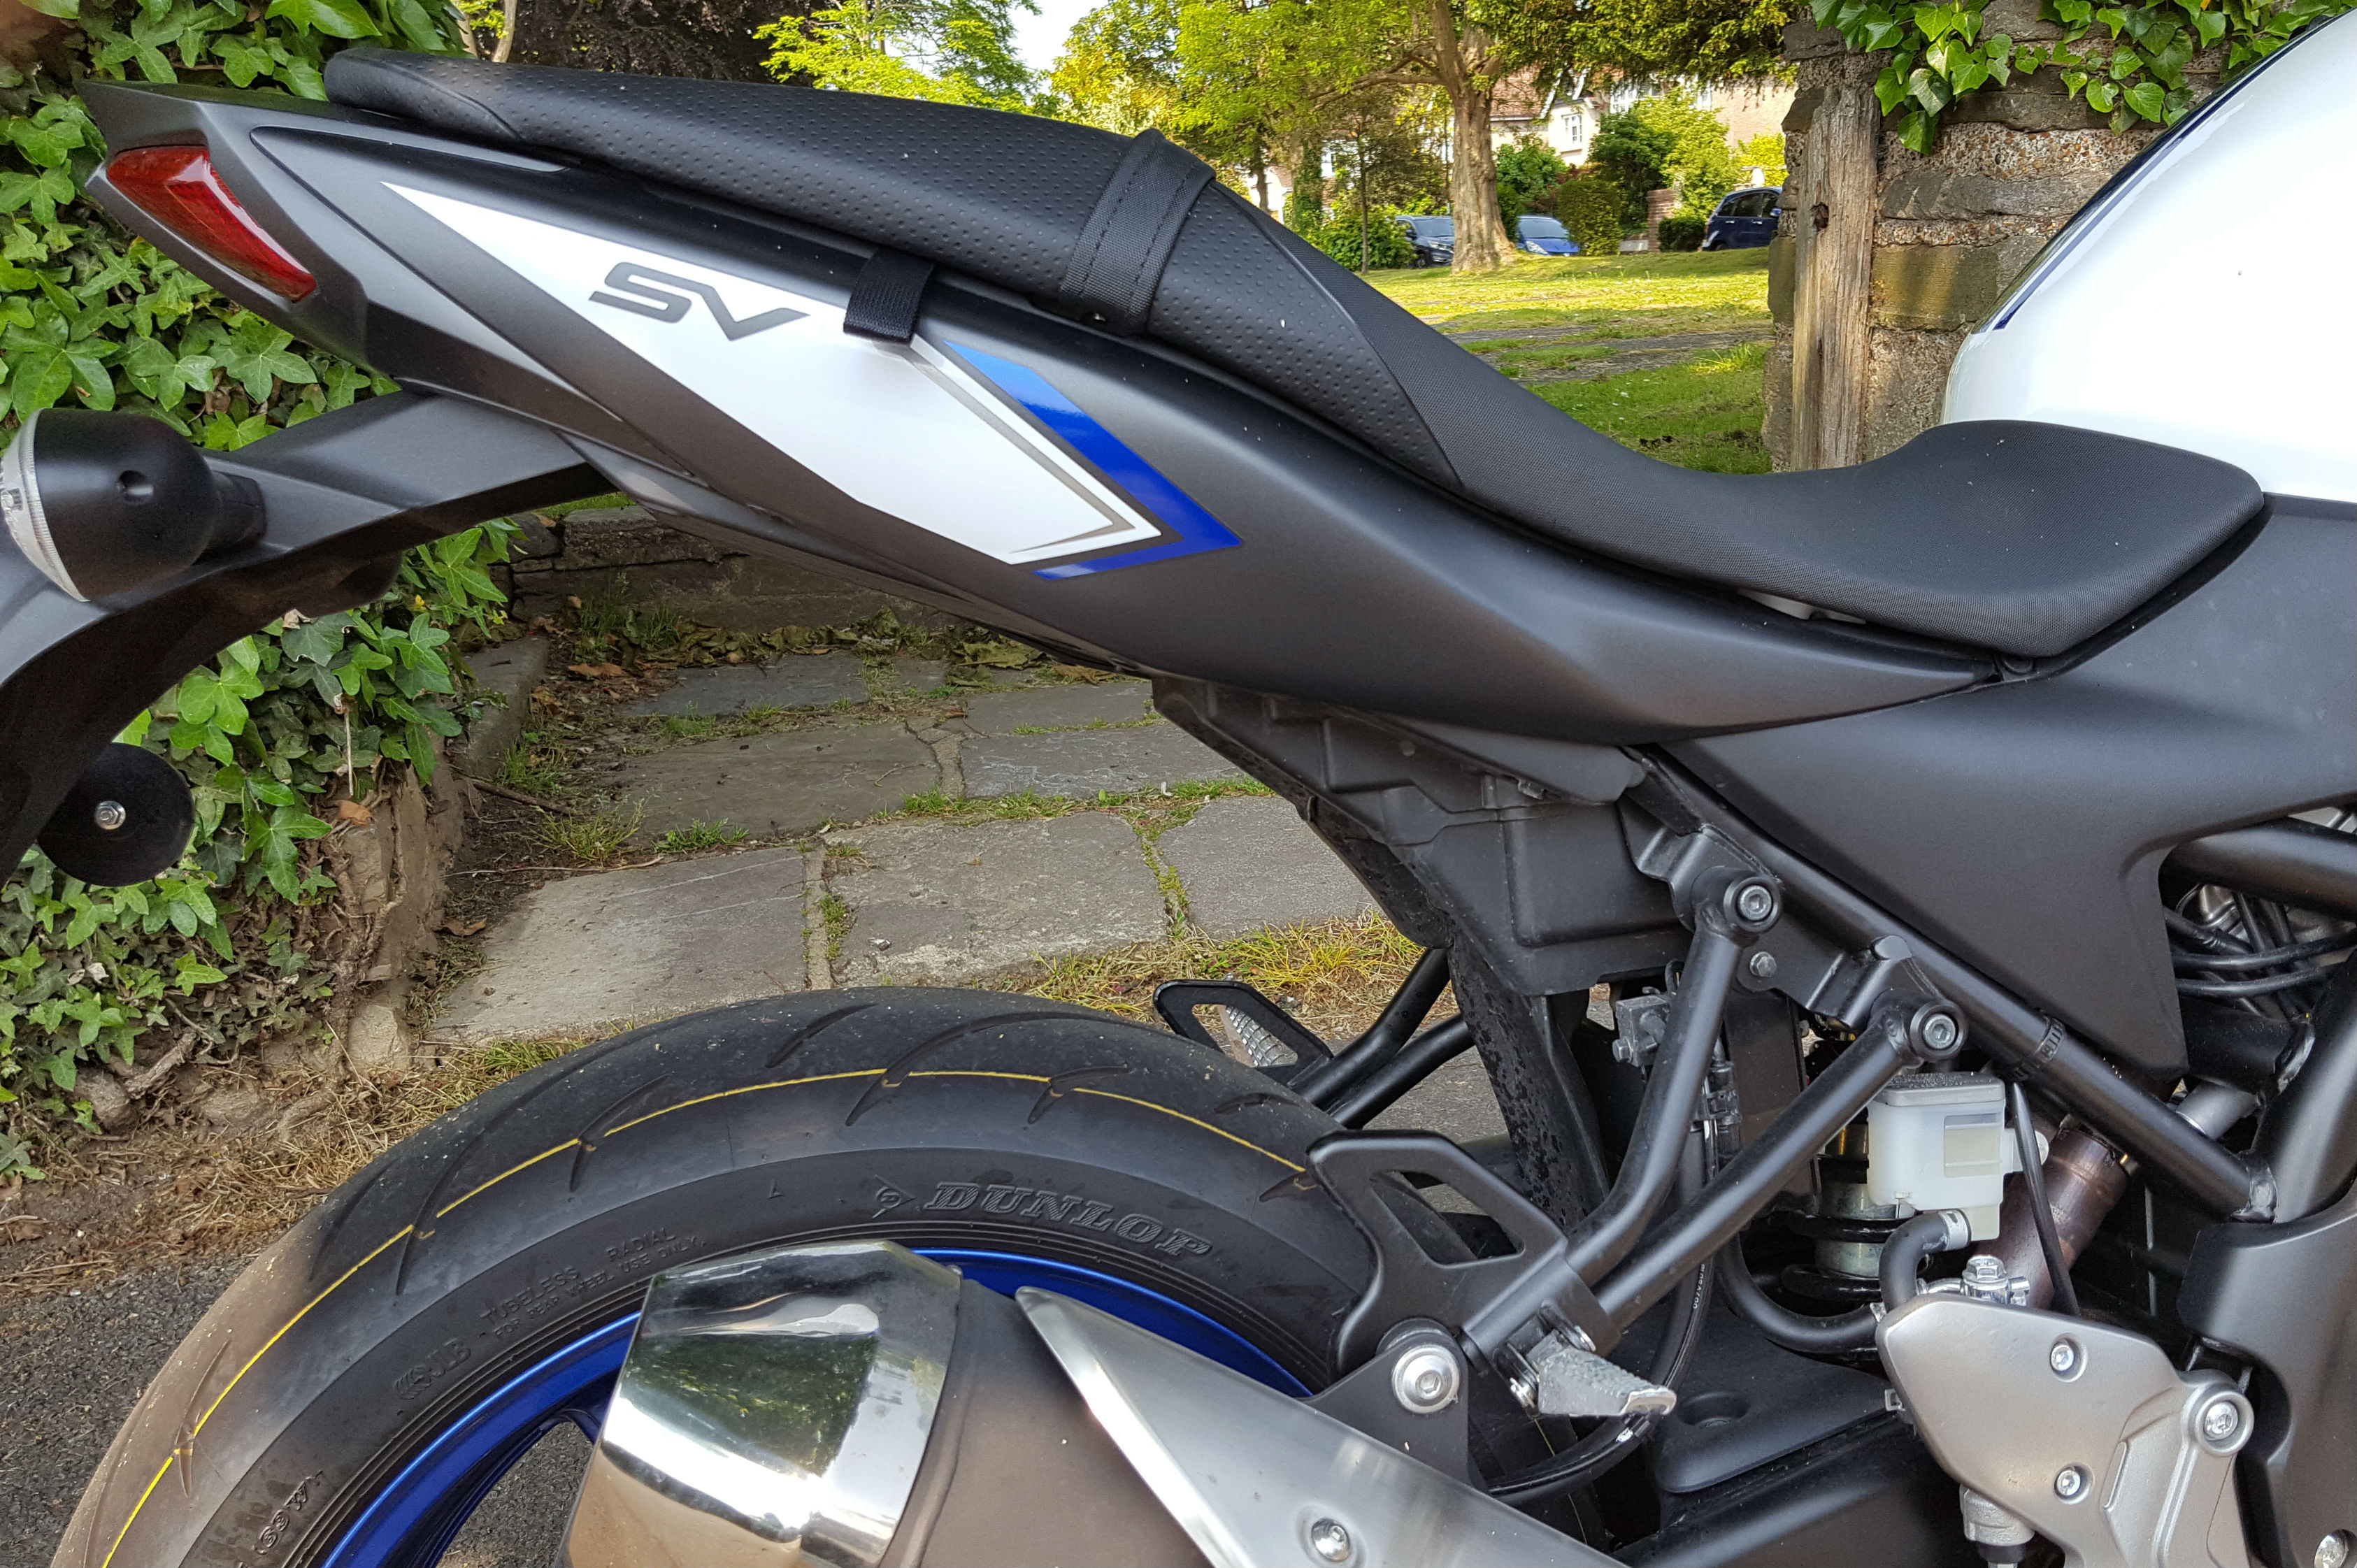 Suzuki Sv650 Long Term Review Visordown Moded Bikes The Old Sv Has A Much Bigger Space Under Pillion Seat With Two Hooks For Locking Helmets To New One Nowhere Secure Helmet